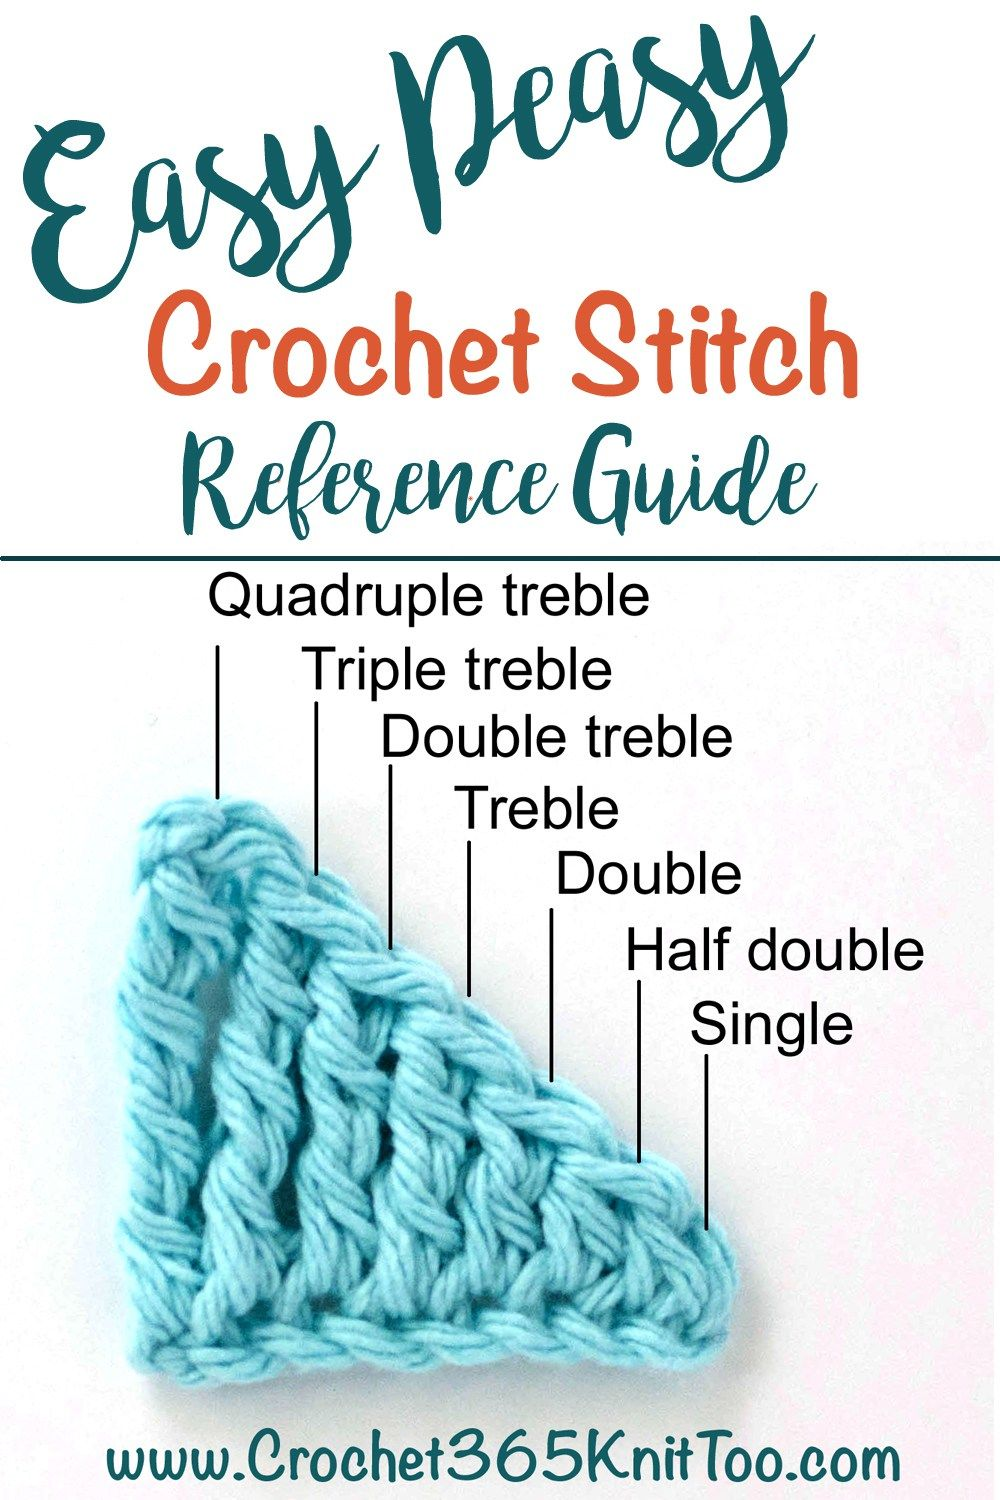 Crochet Stitch Heights | Crochet stitches, Easy crochet stitches and ...